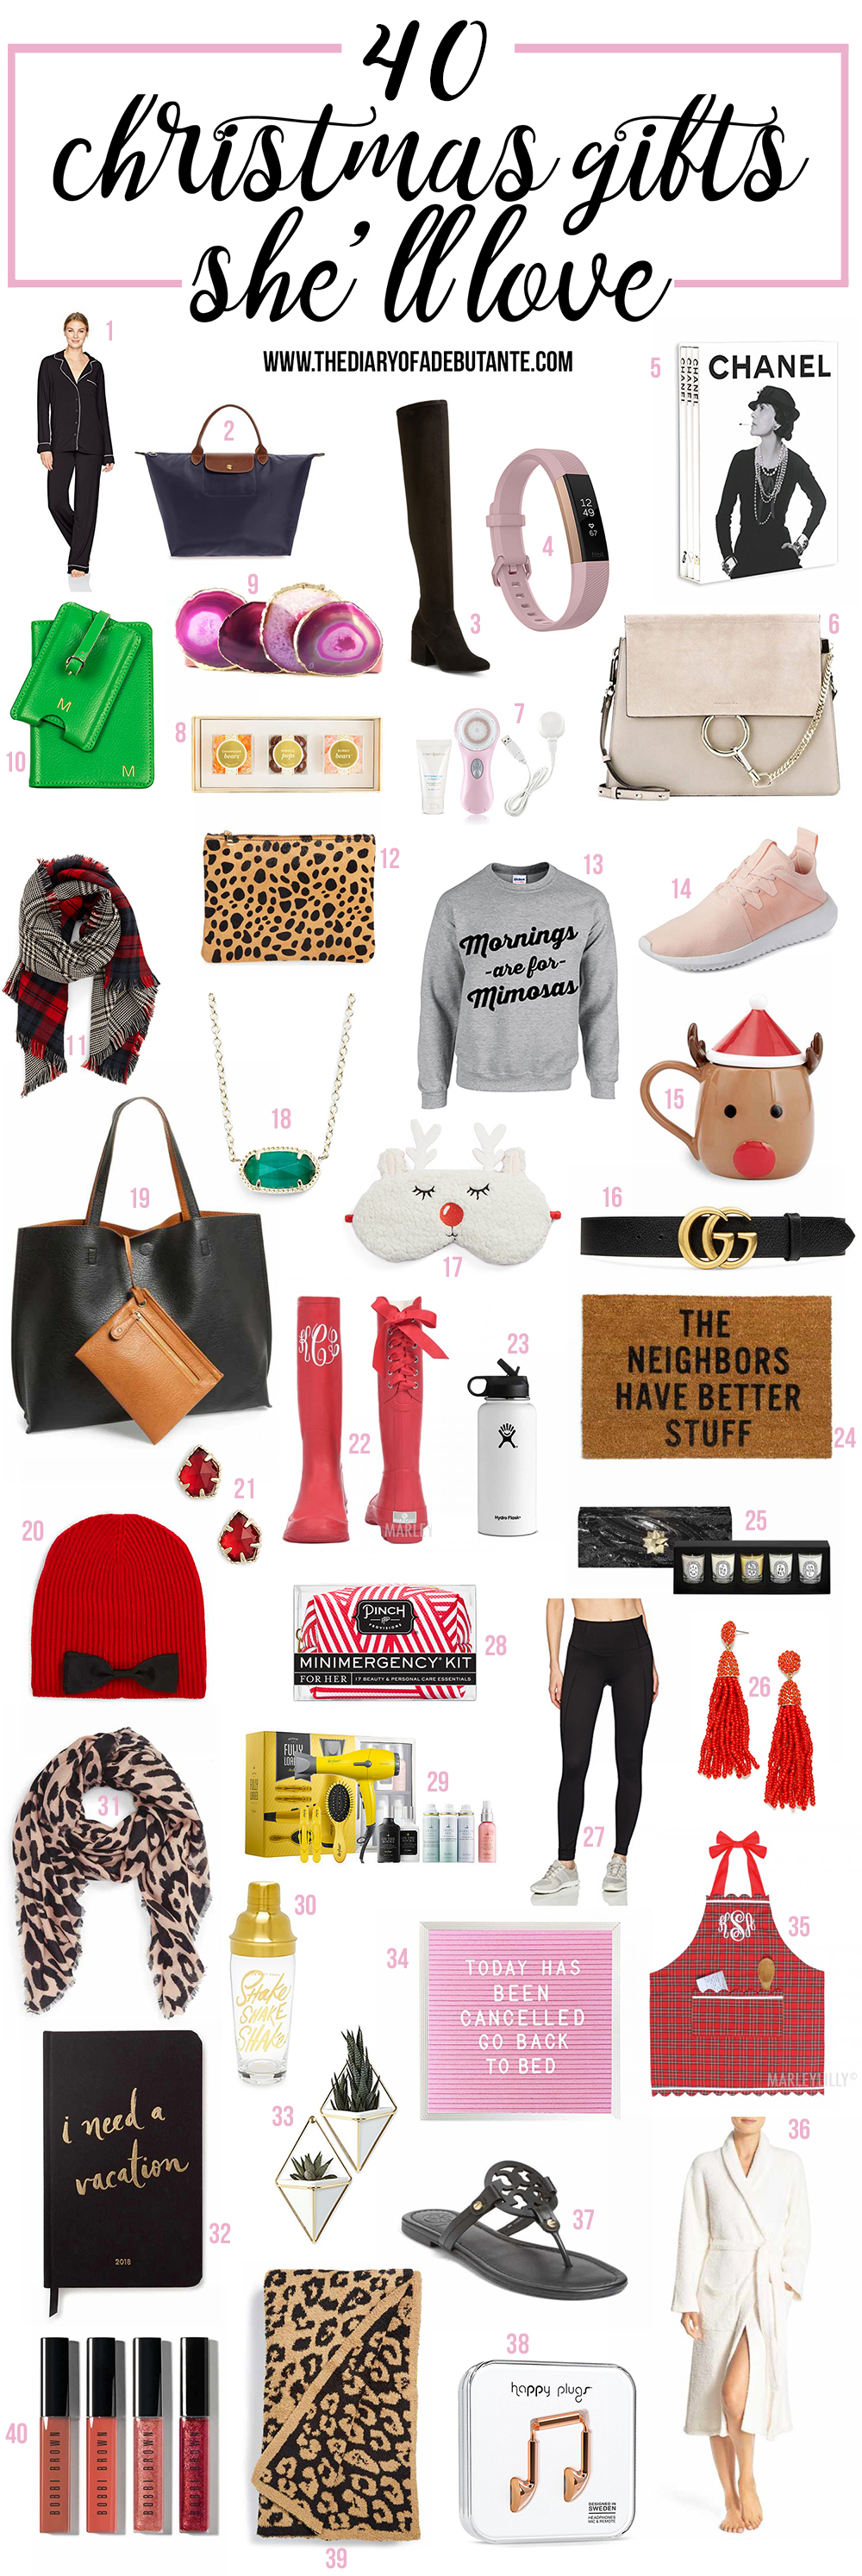 Holiday gift guide for her for every budget (featured items range from $15 to $450) | Christmas gift ideas for girlfriend | Cool gift ideas for girlfriend | Affordable gifts for her | Christmas gifts for women | 40 gifts she'll LOVE this Christmas by fashion blogger Stephanie Ziajka from Diary of a Debutante